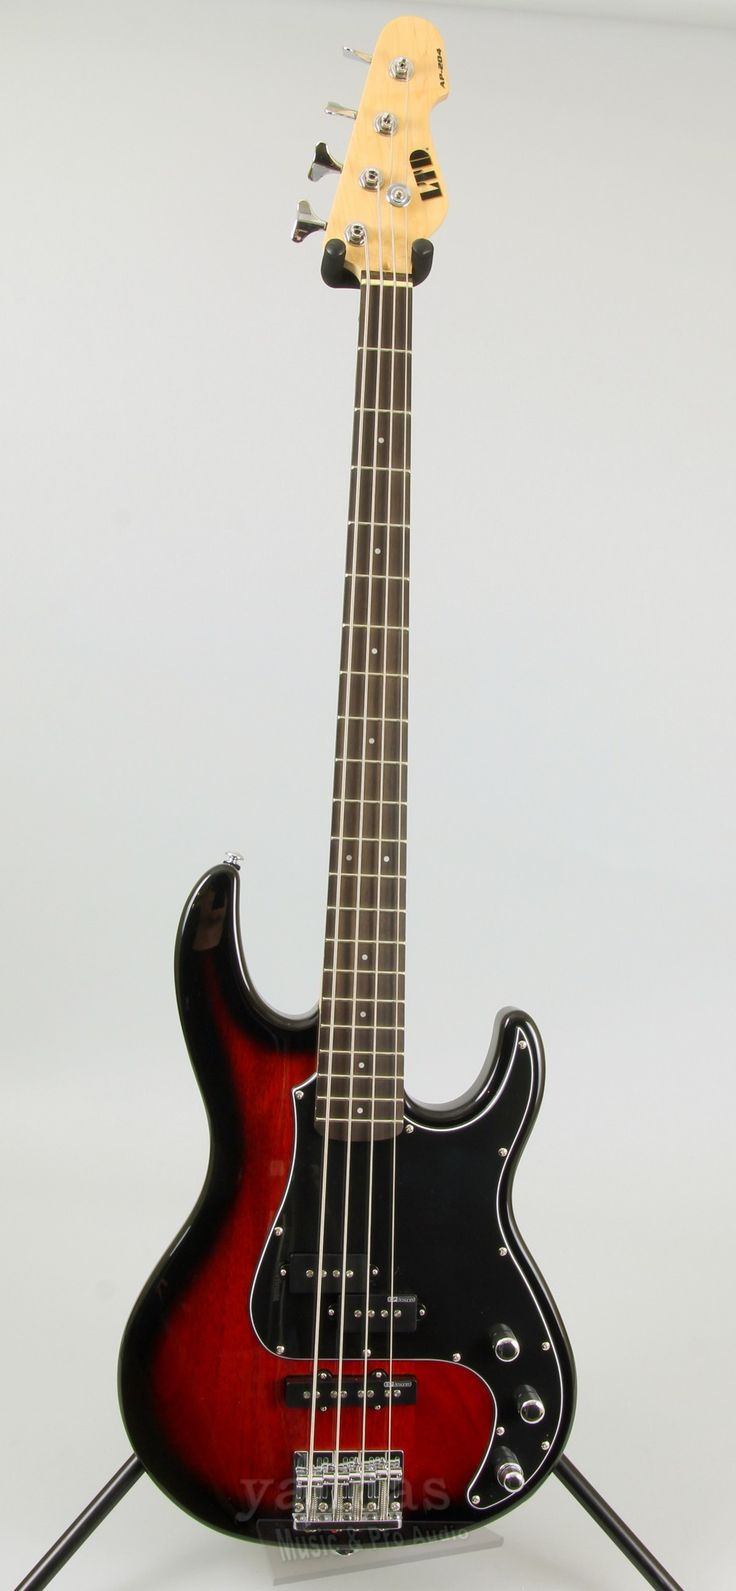 1434 best bass music images on pinterest bass guitars musical ltd features bass guitar mahogany body rosewood fingerboard bolt on maple neck scale length thin u neck contour chrome hardware esp designed ccuart Gallery